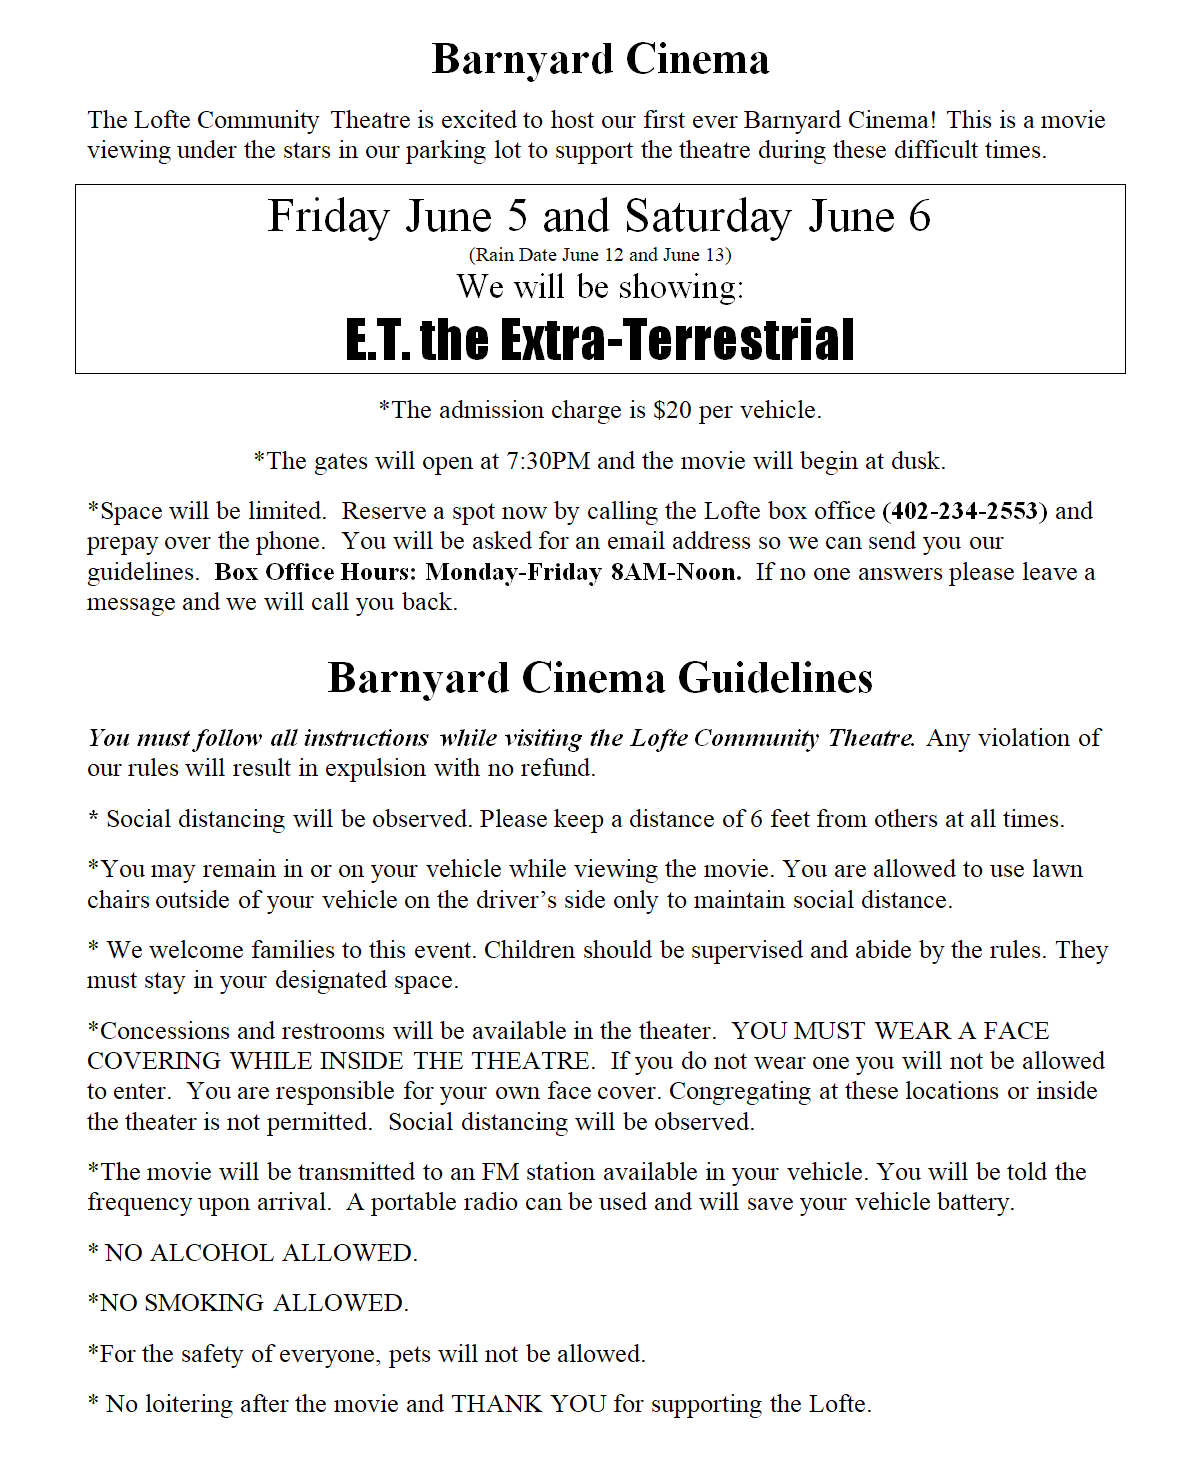 Barnyard Cinema Guidelines